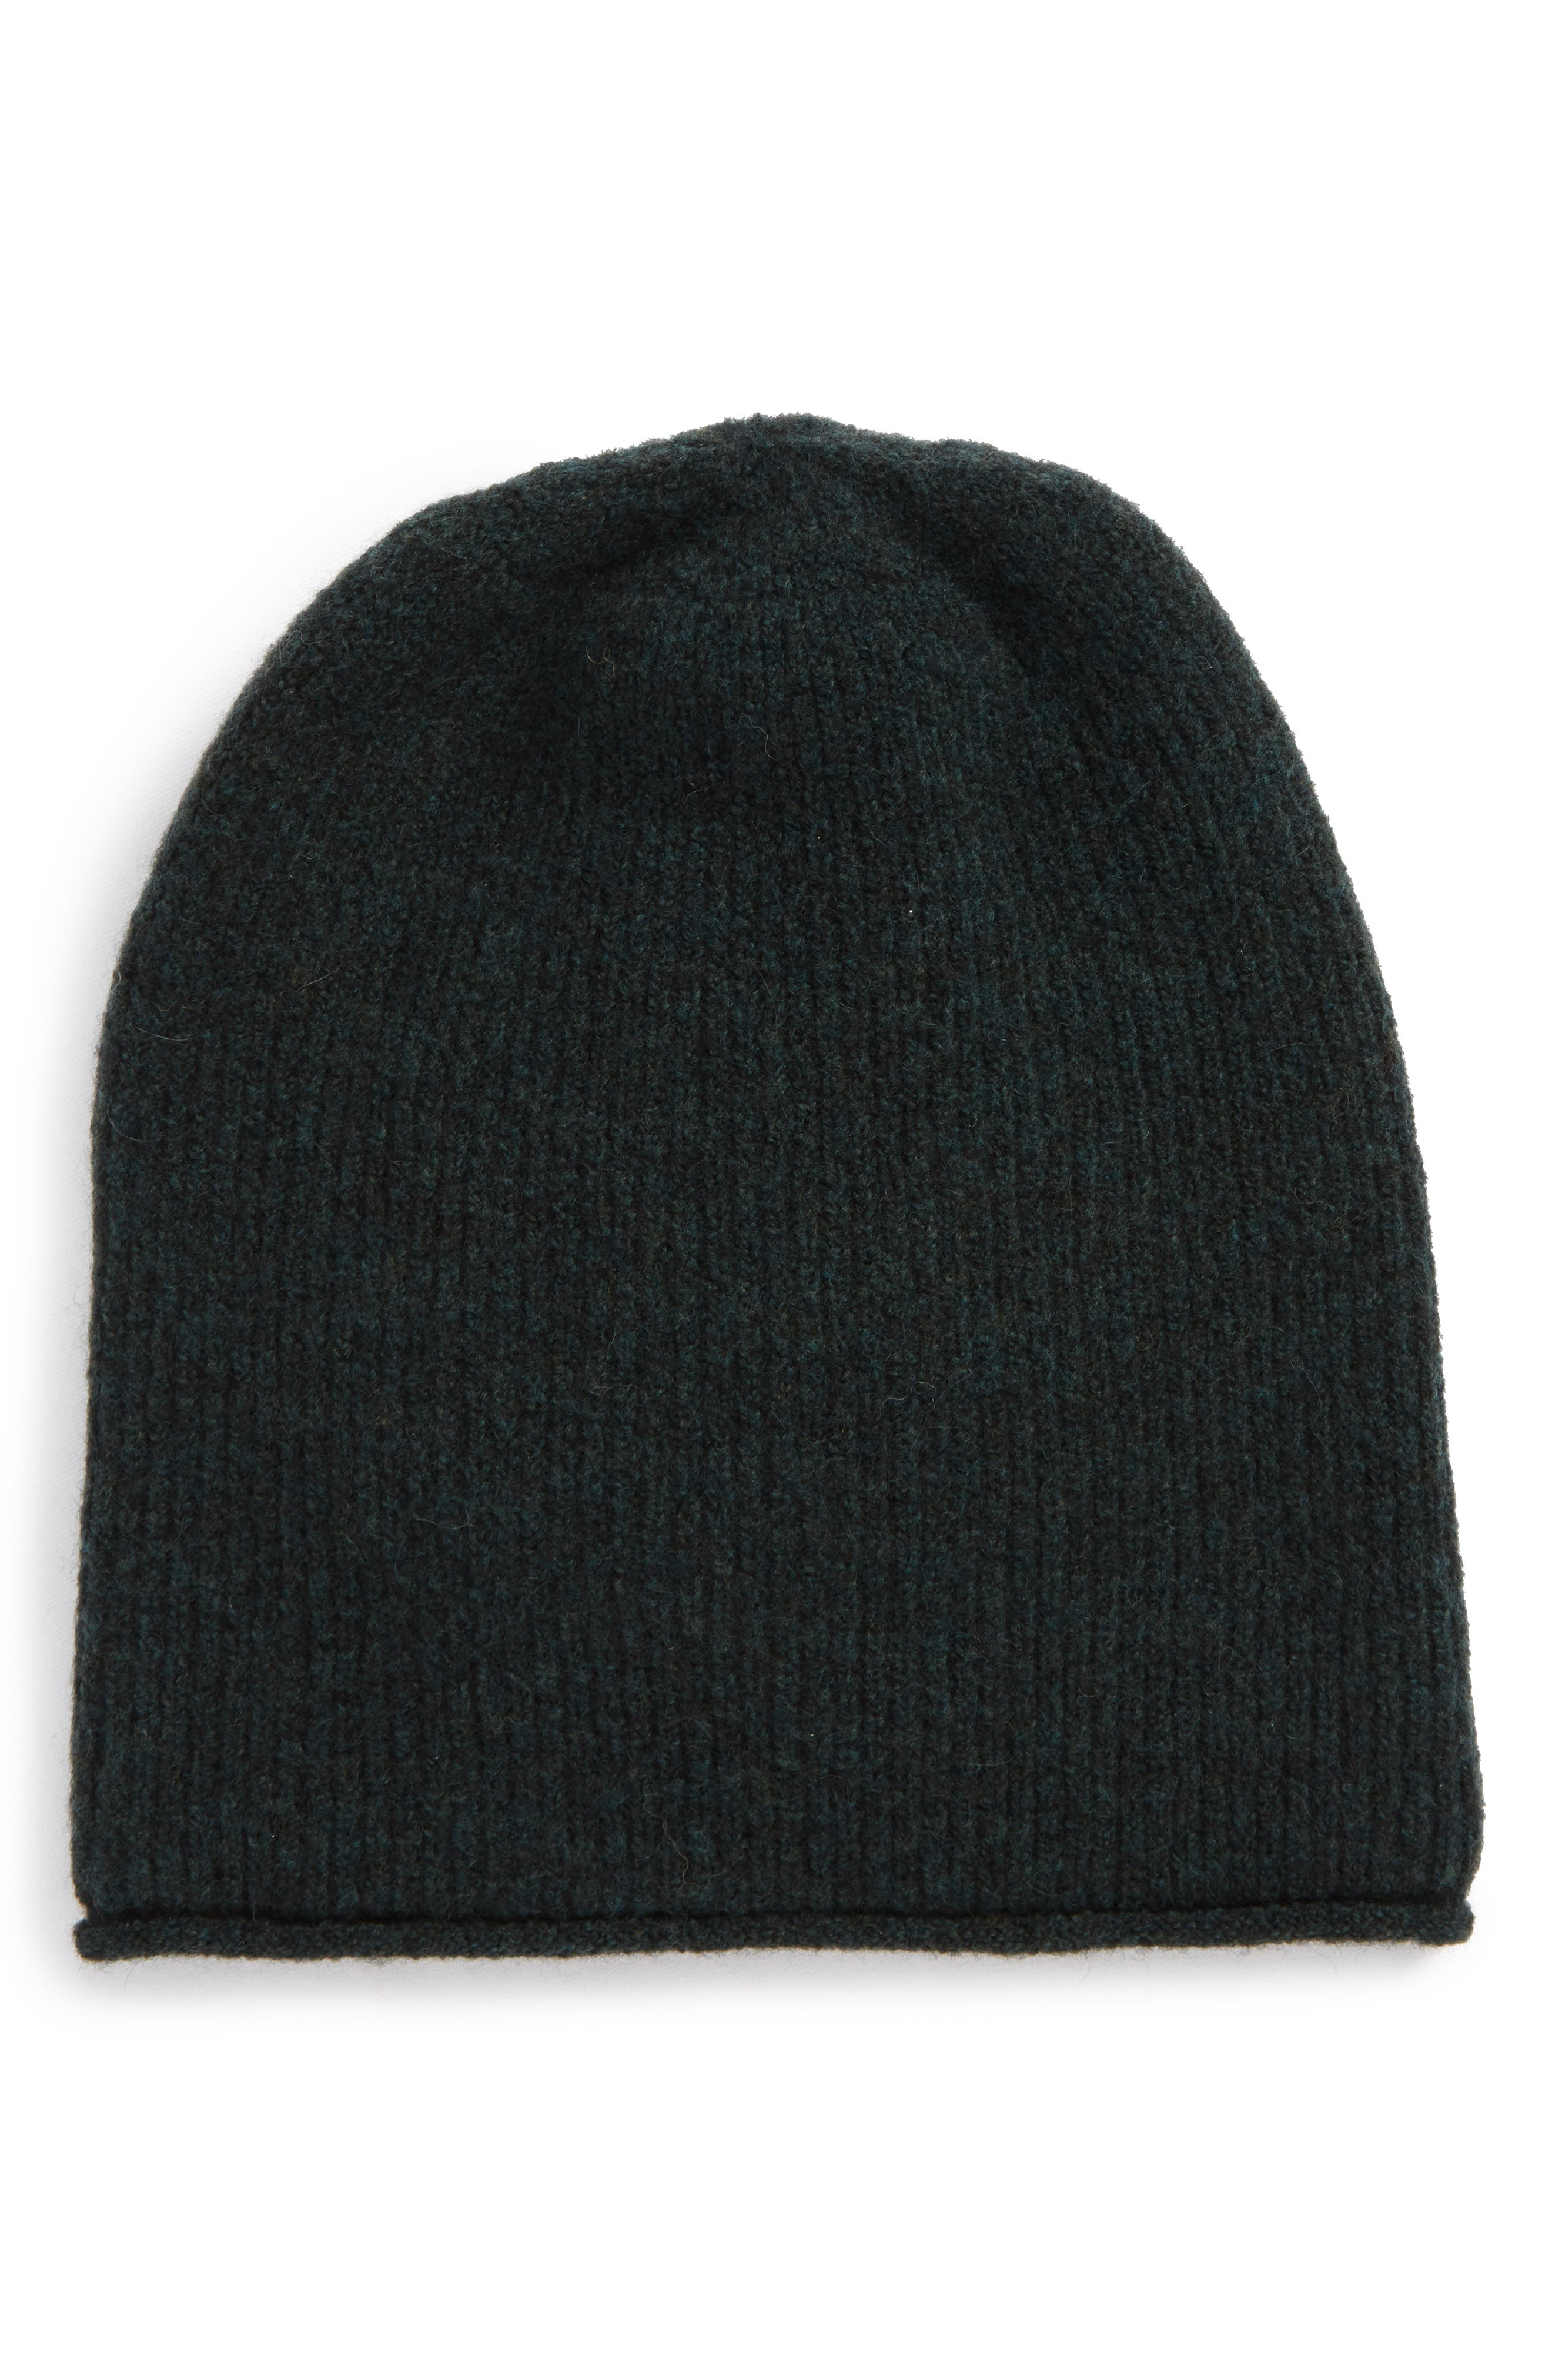 Alternate Image 1 Selected - Madewell Ryder Beanie